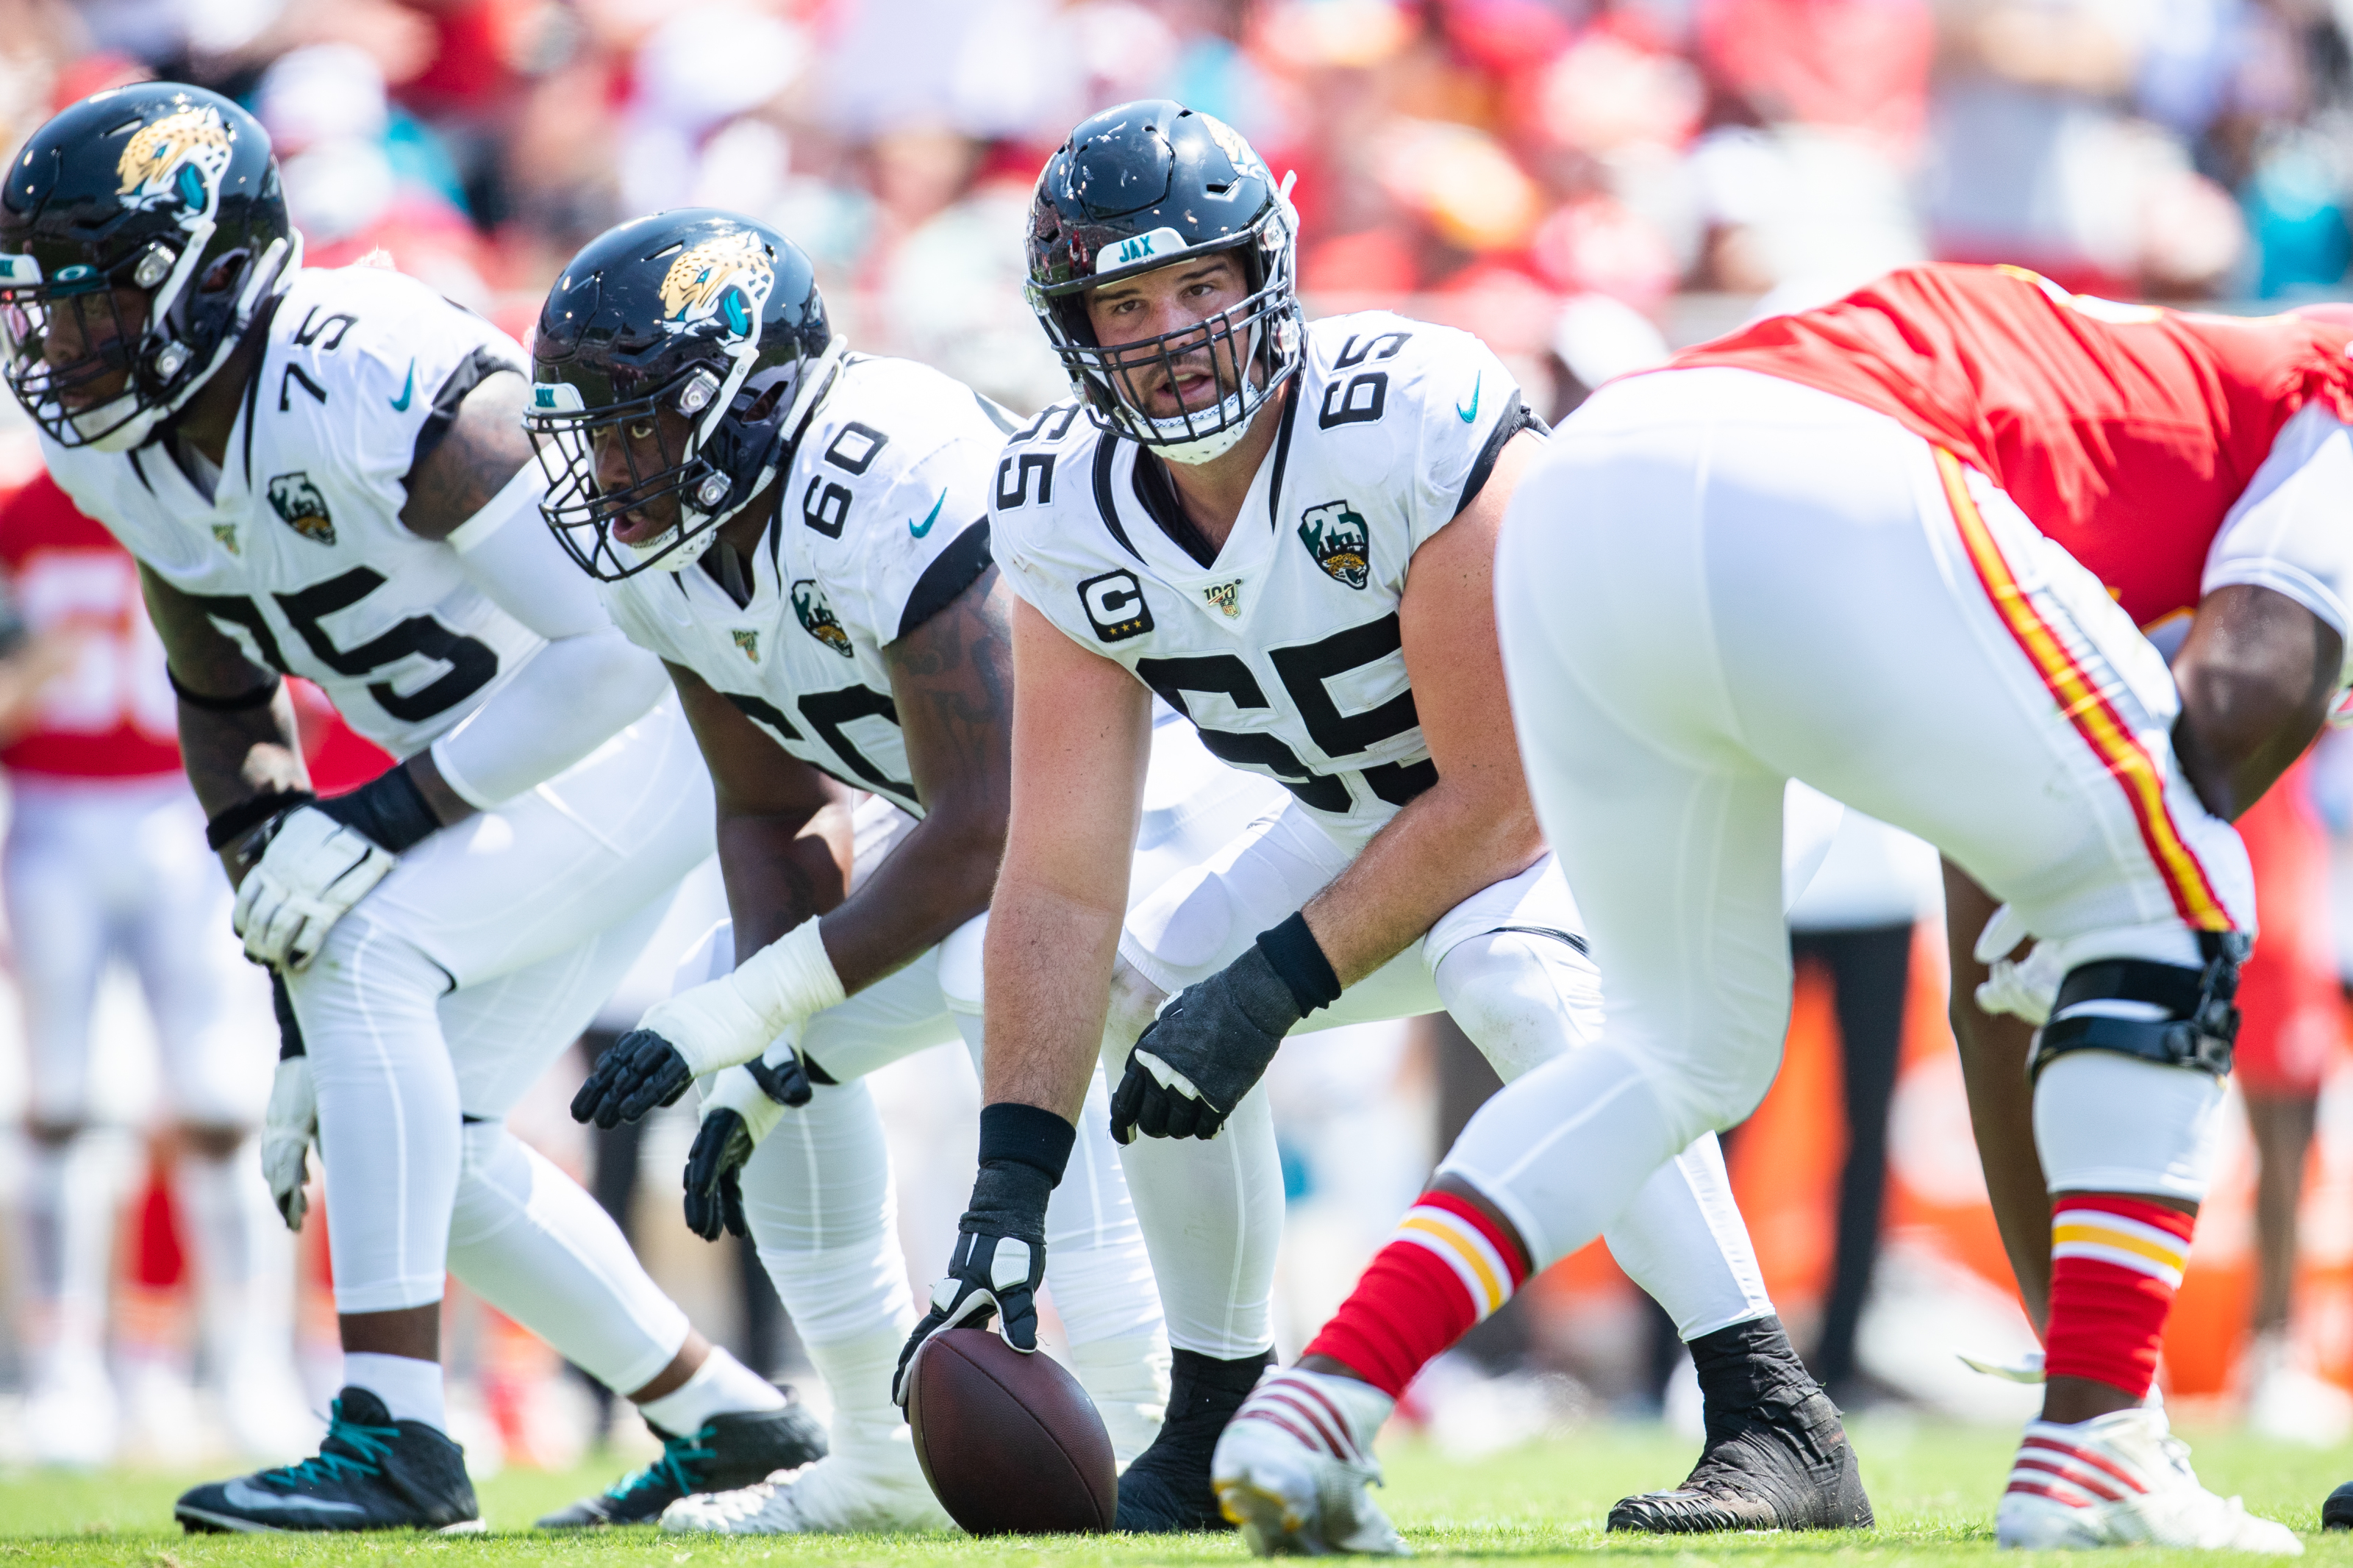 The Jacksonville Jaguars O-Line is the worst in the AFC South